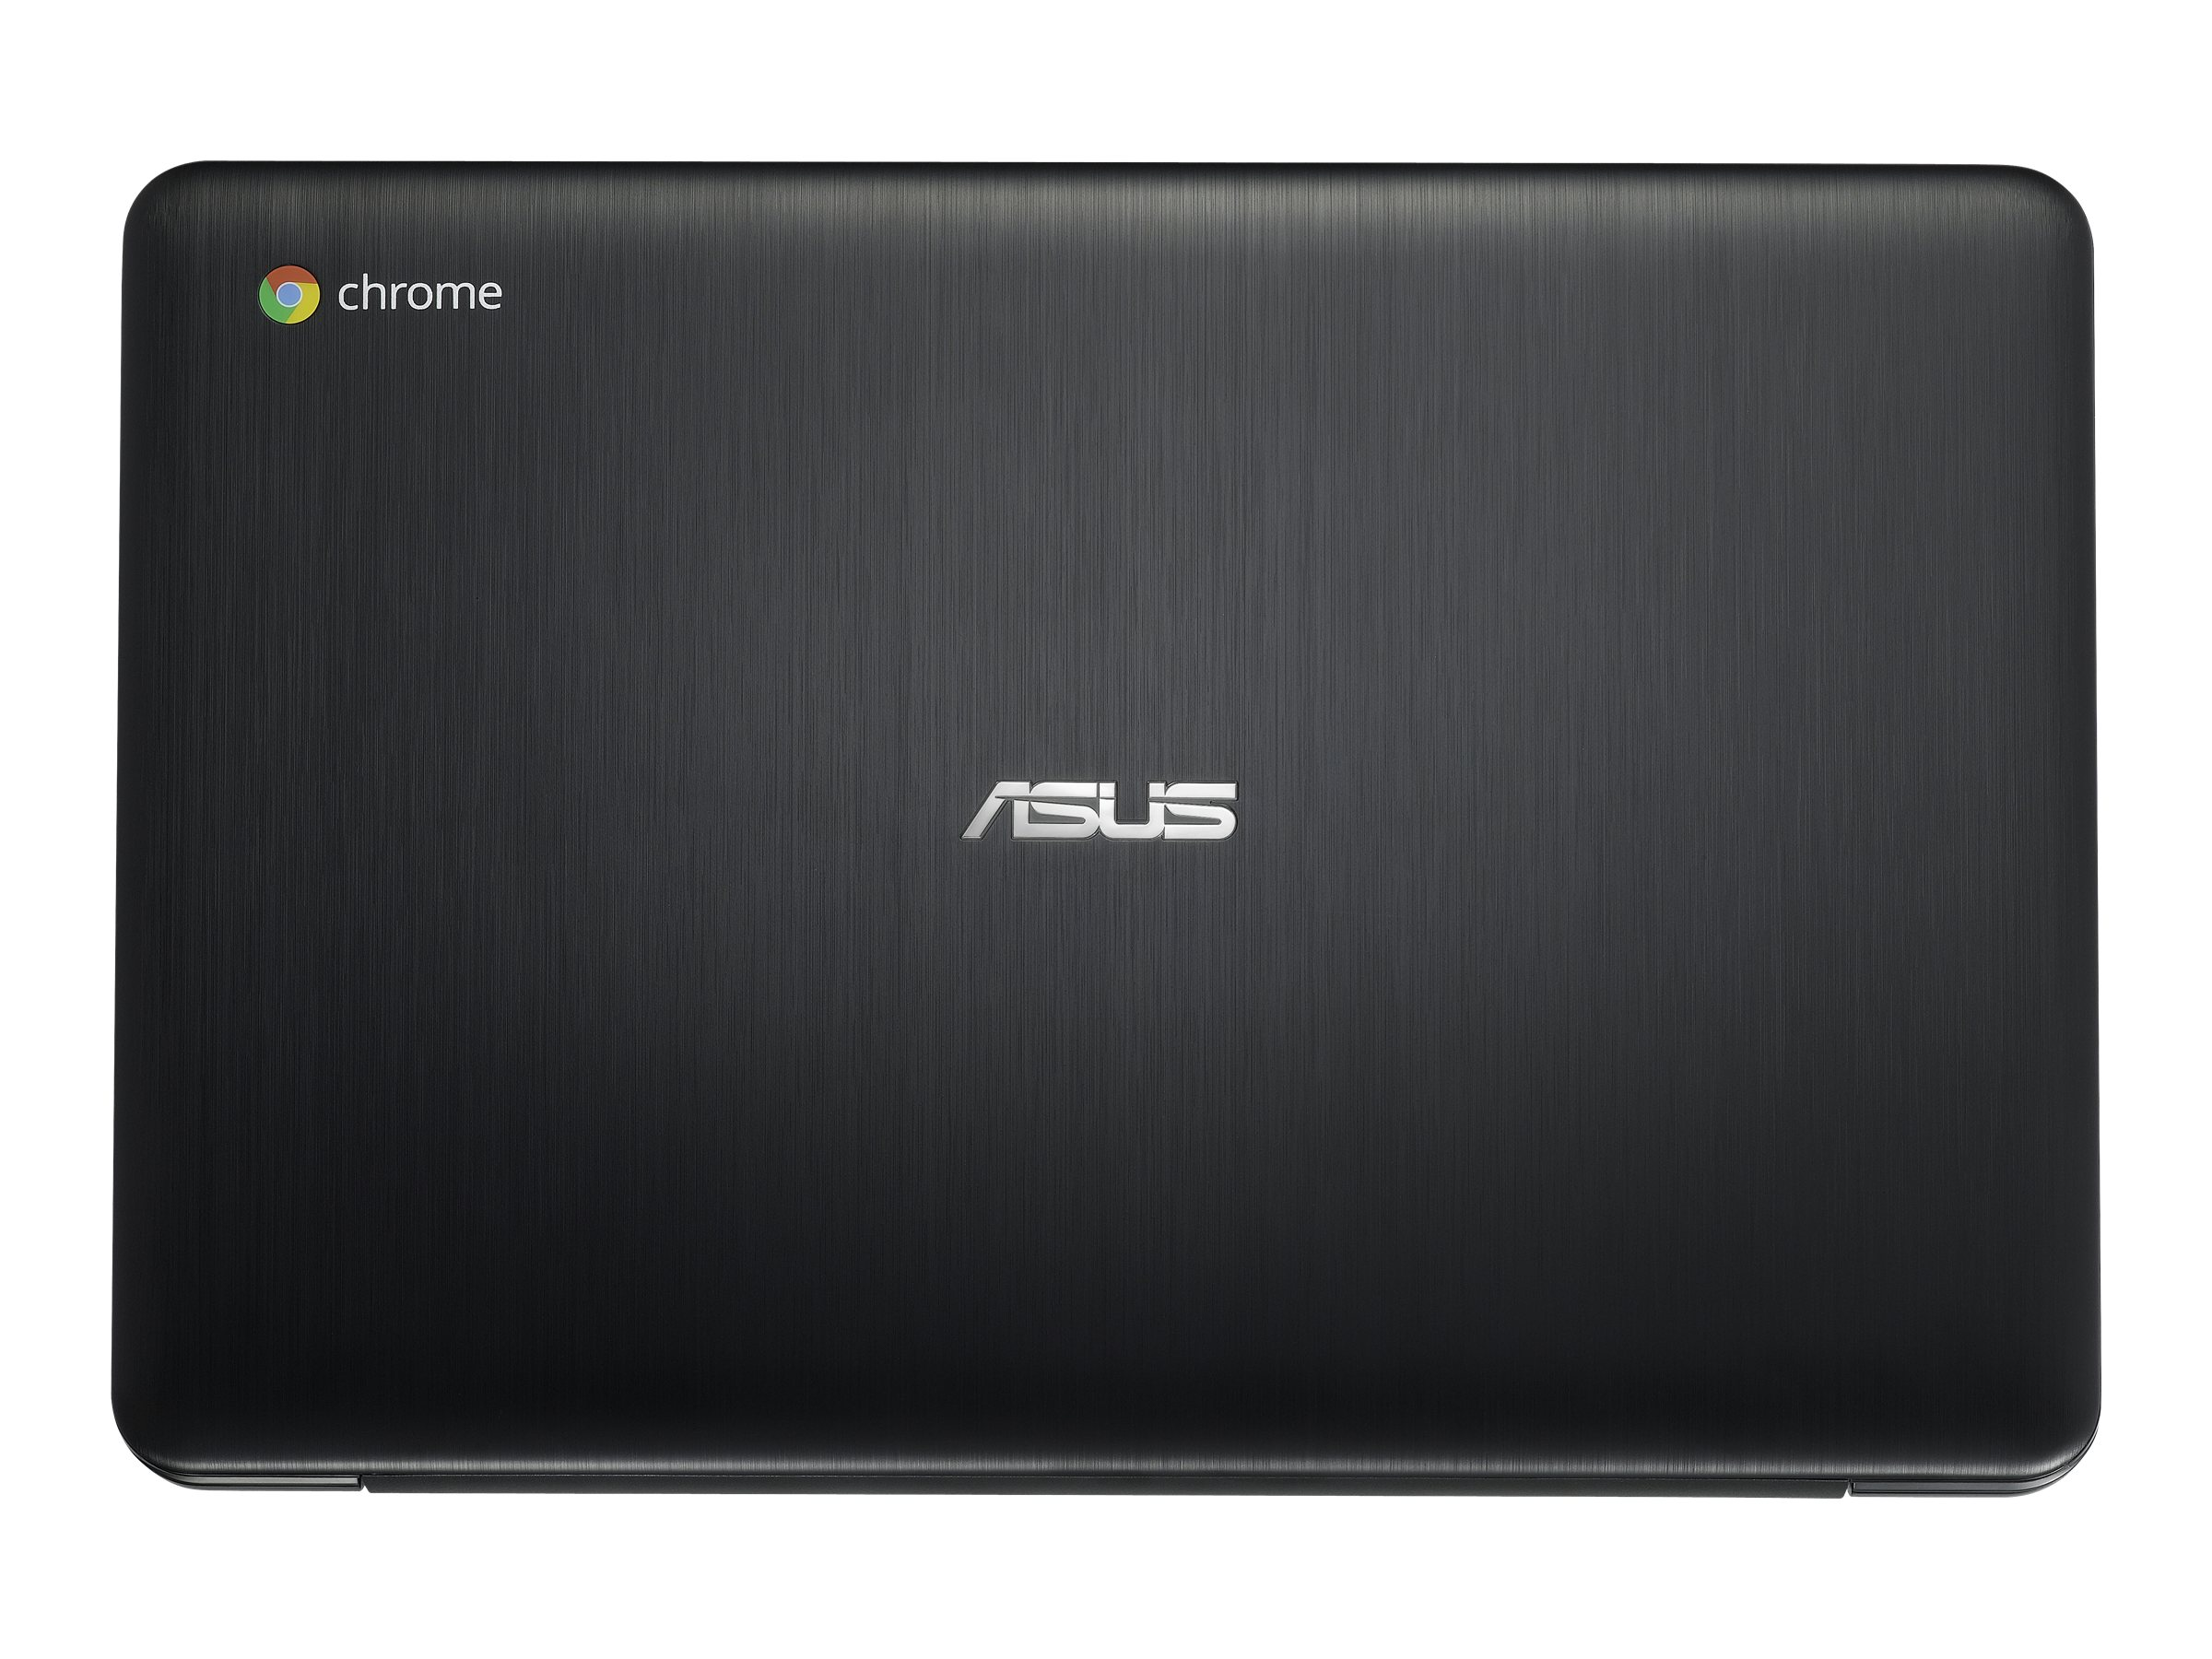 Asus C300MA-DH02-LTE Image 5